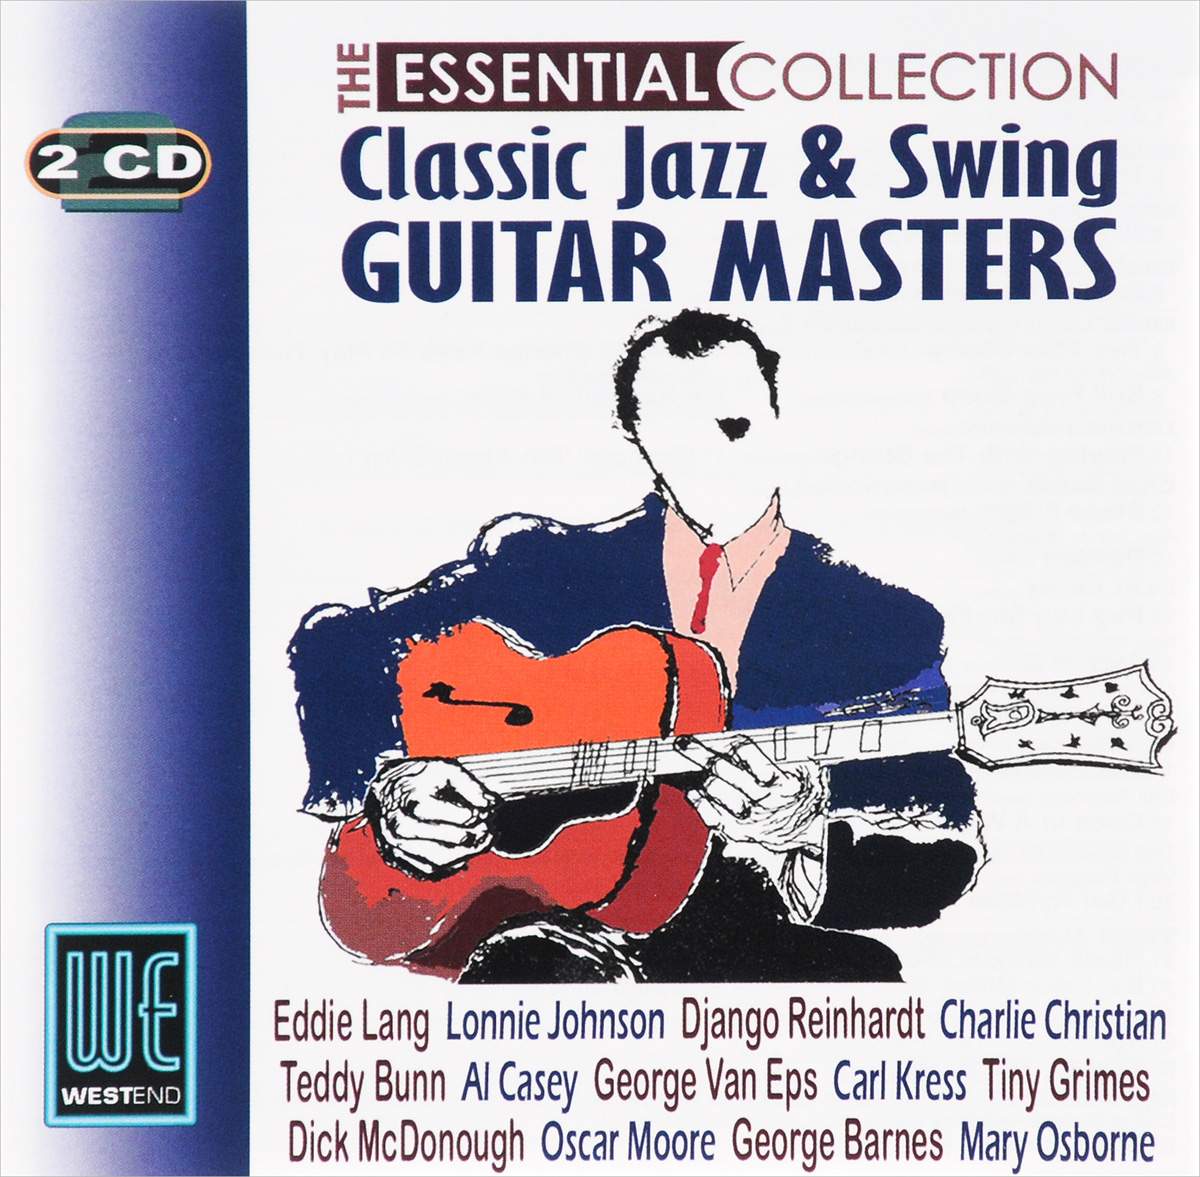 The Essential Collection. Classic Jazz and Swing Guitar Masters (2 CD) лопатка кулинарная marmiton цвет розовый бледно розовый длина 25 см